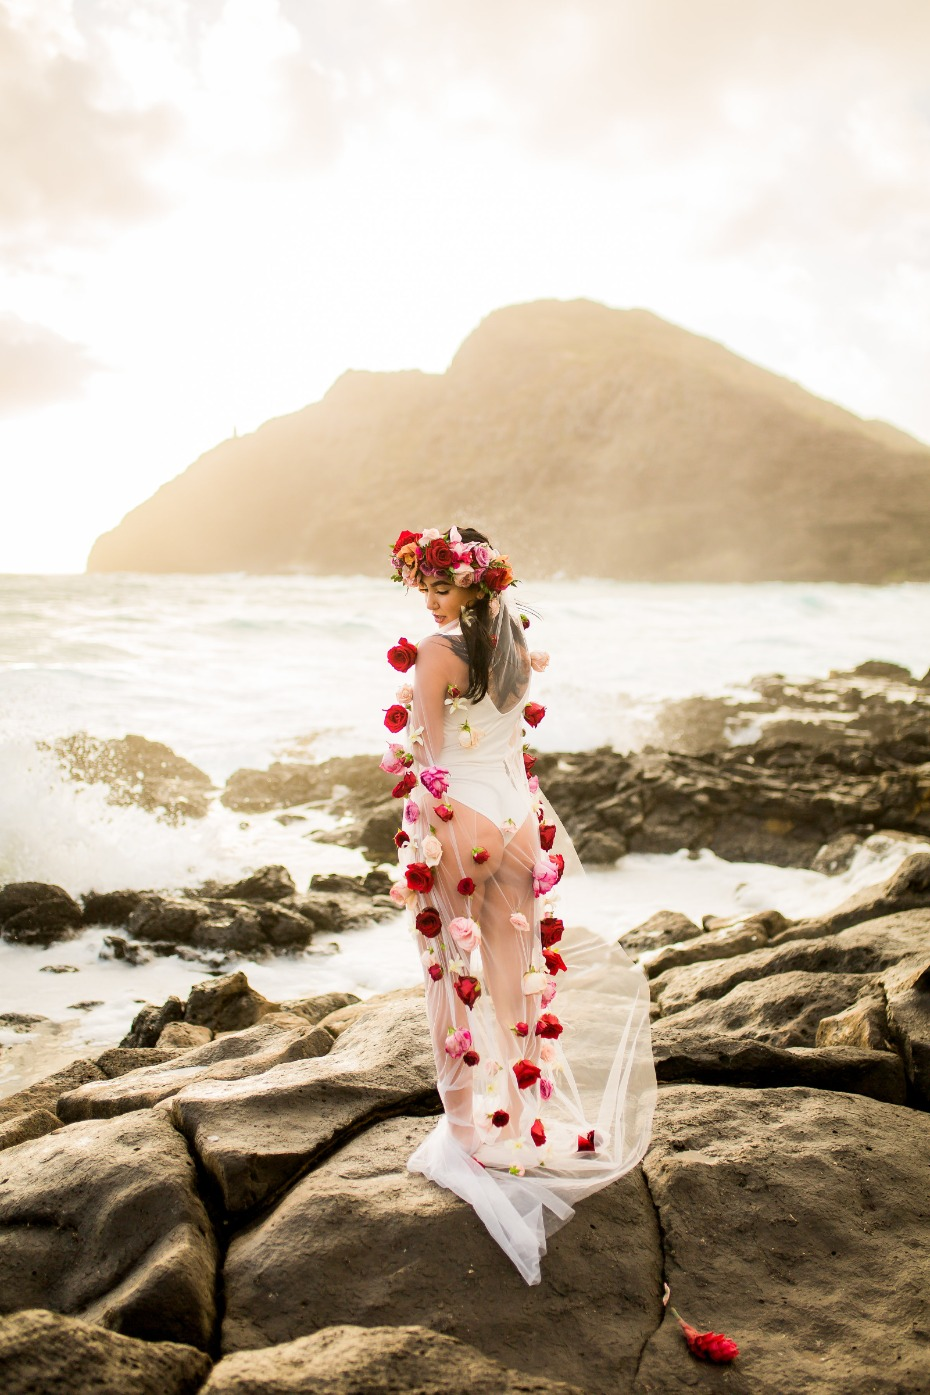 Dreamy bridal session in Hawaii with a flower veil